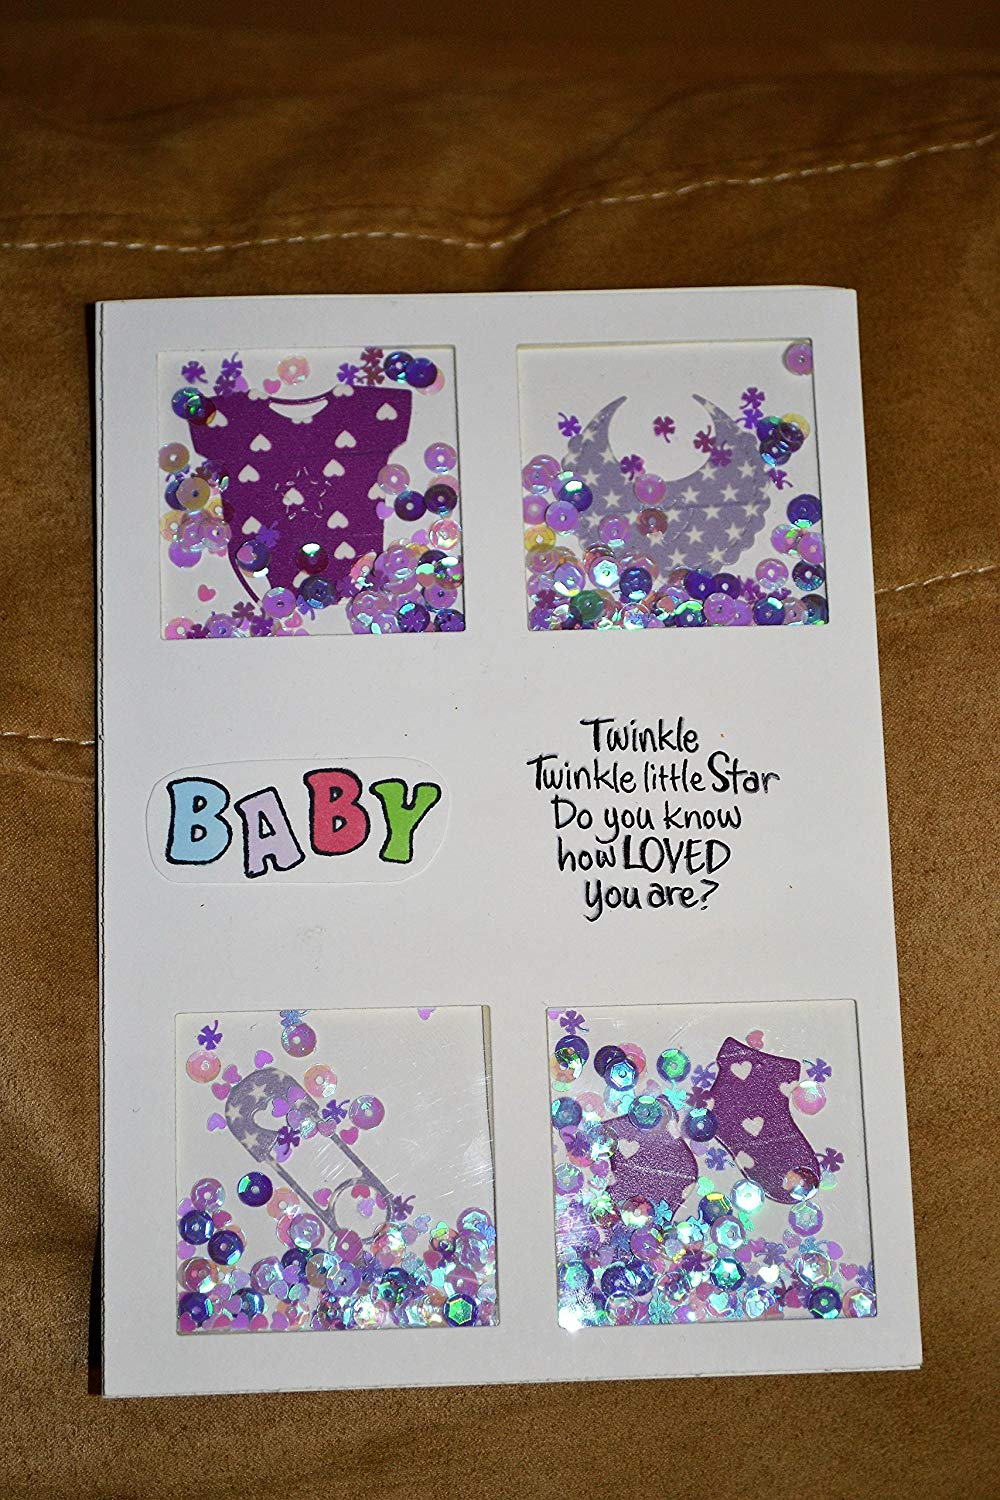 Get Quotations Welcome Baby Card Handmade Shaker Shower Gift Happy Birthday